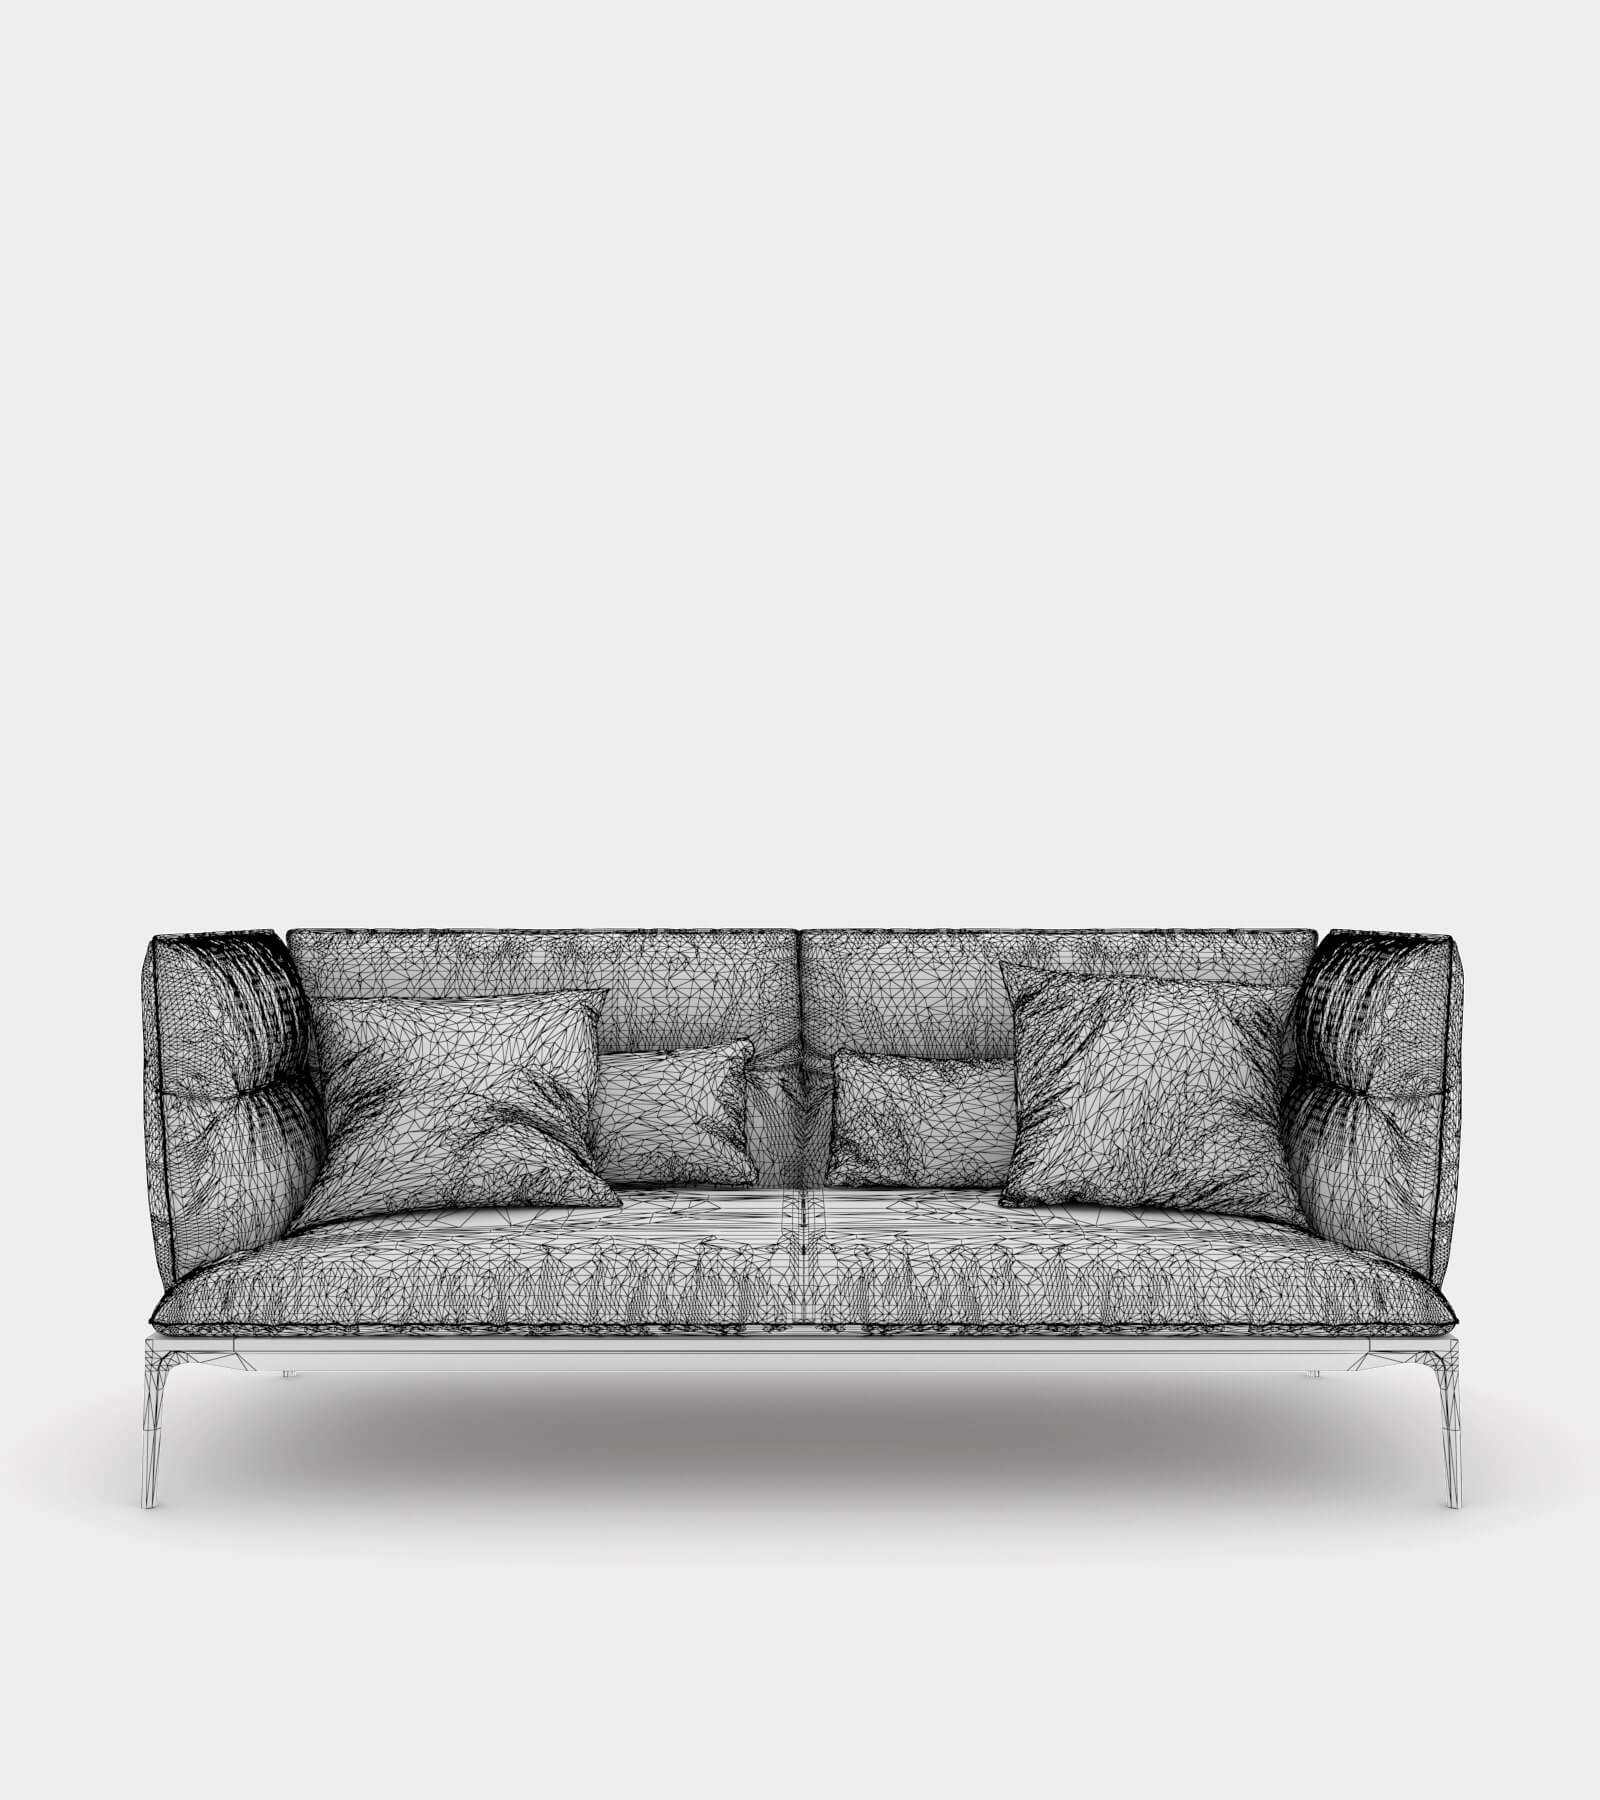 Sofa with high backrest-1-wire 3D Model